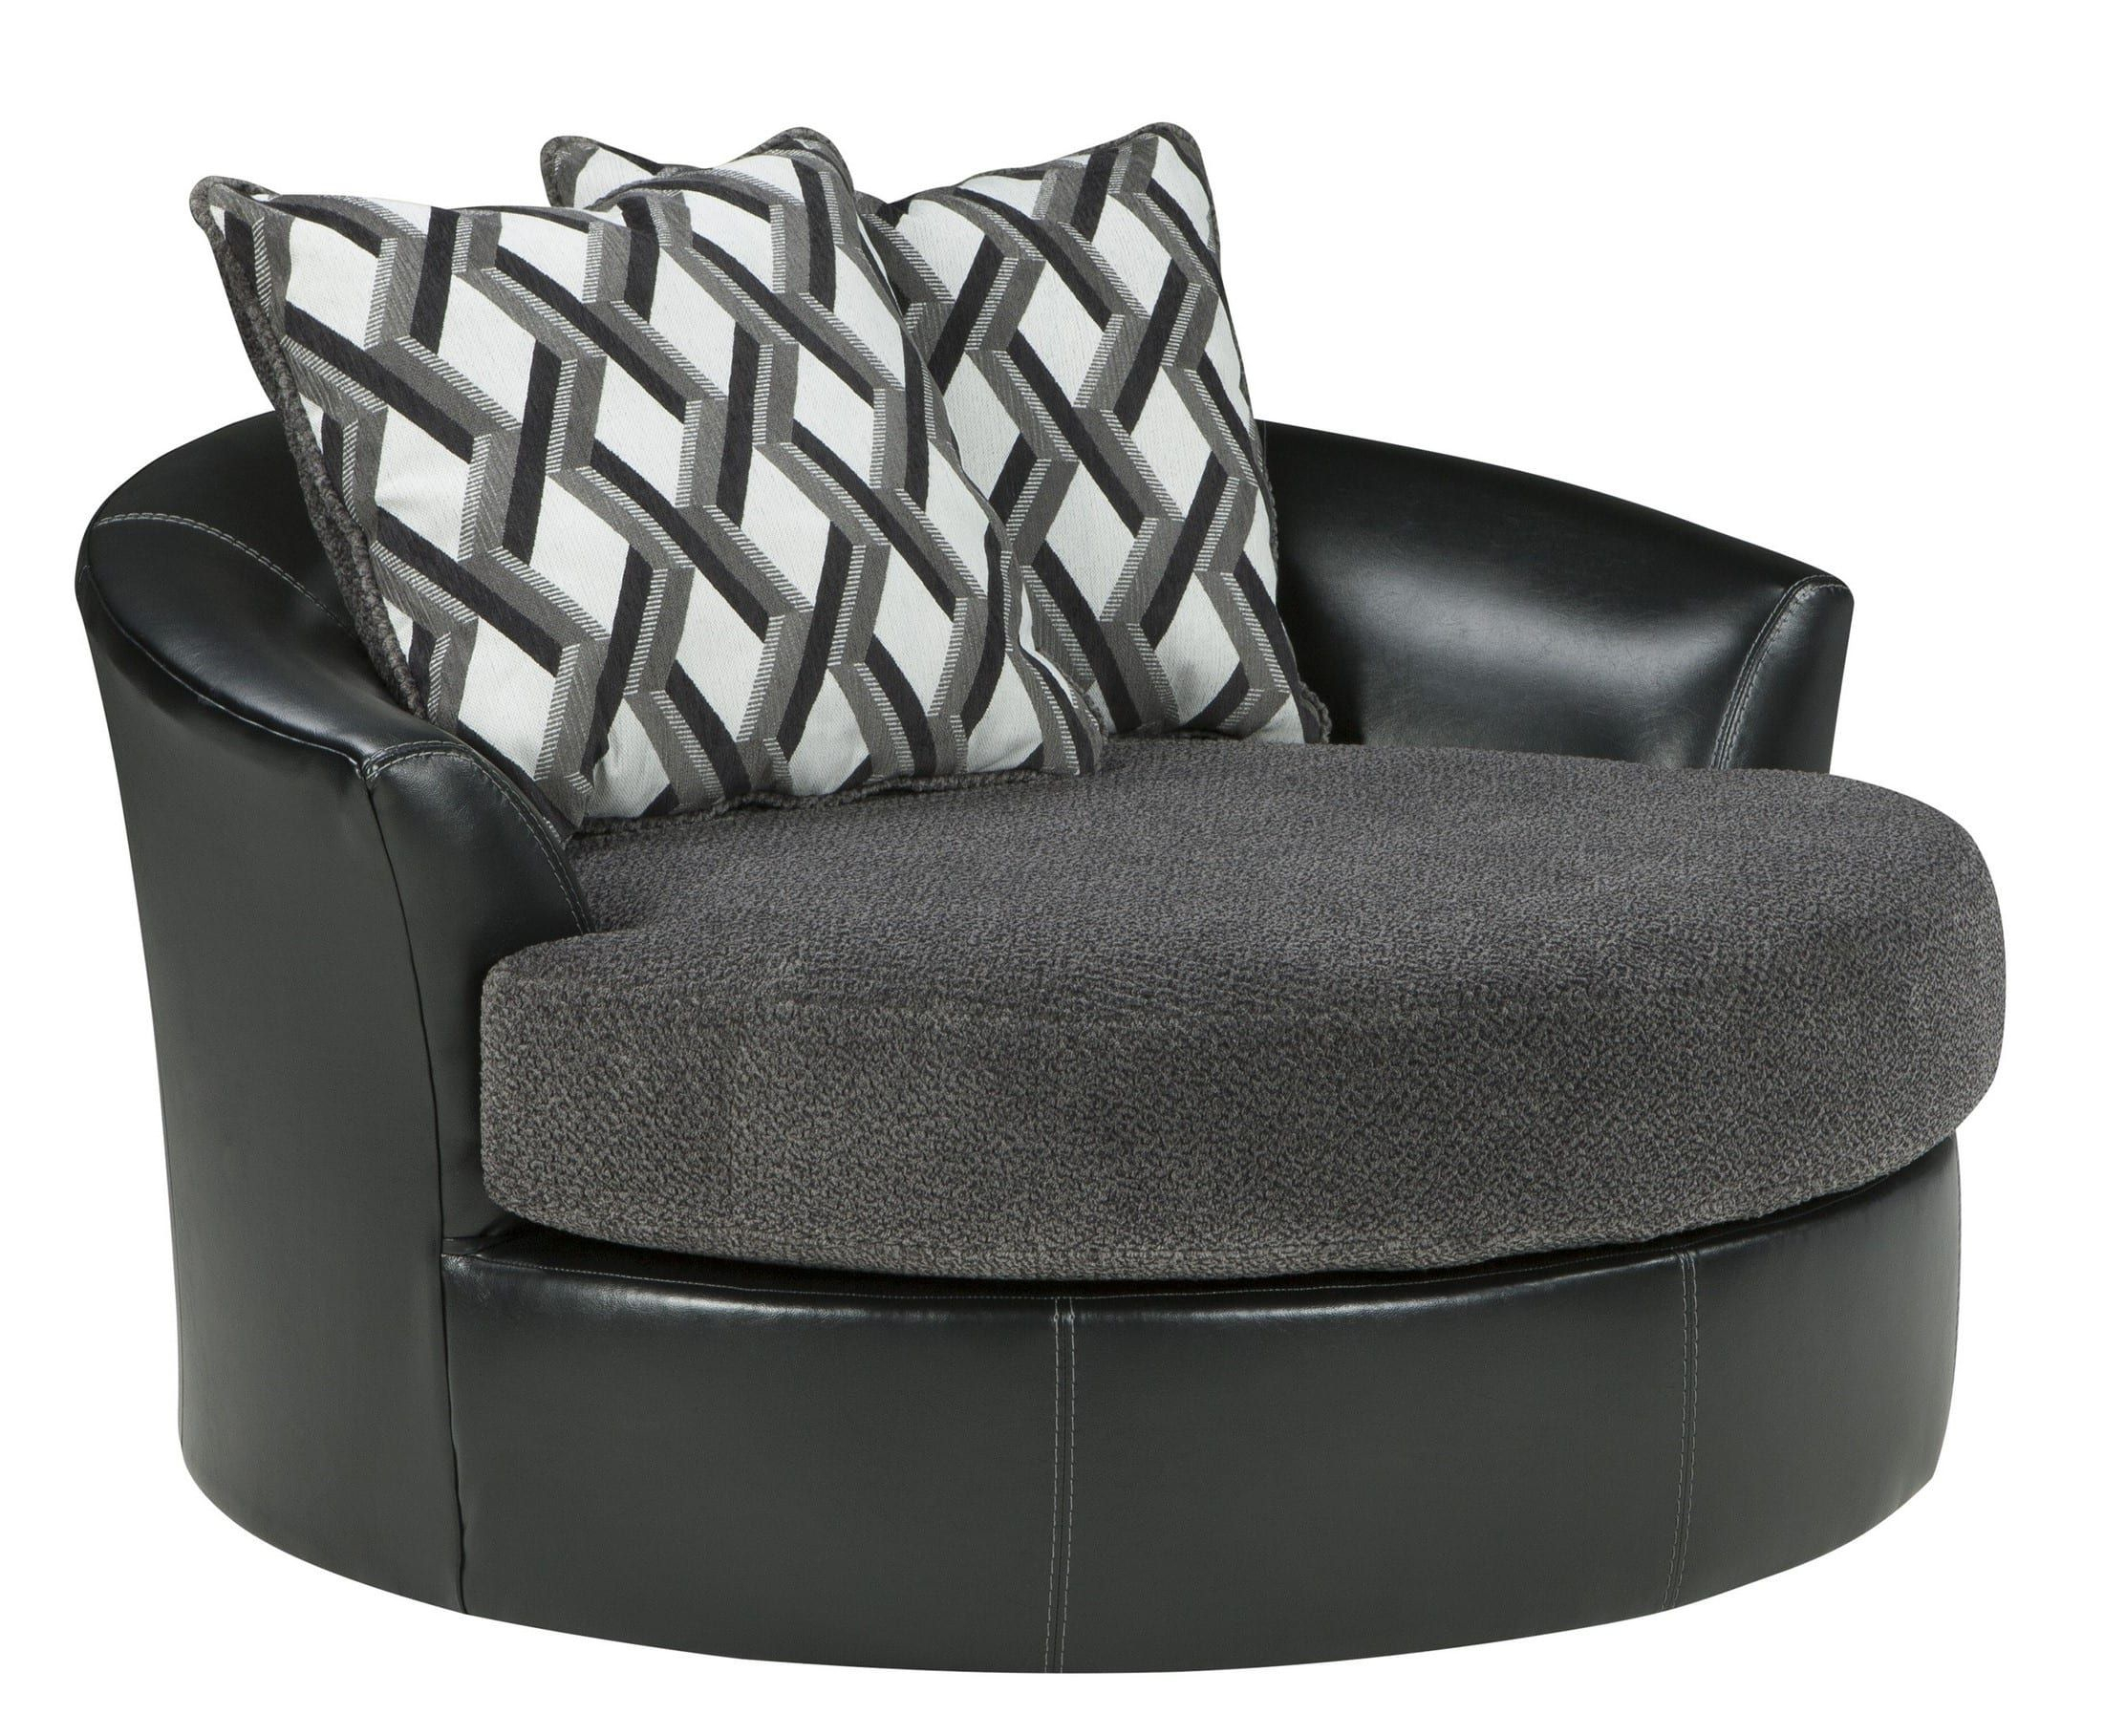 Kumasi Smoke Oversized Swivel Accent Chair | Interior Decorating In Mesa Foam Oversized Sofa Chairs (View 18 of 25)